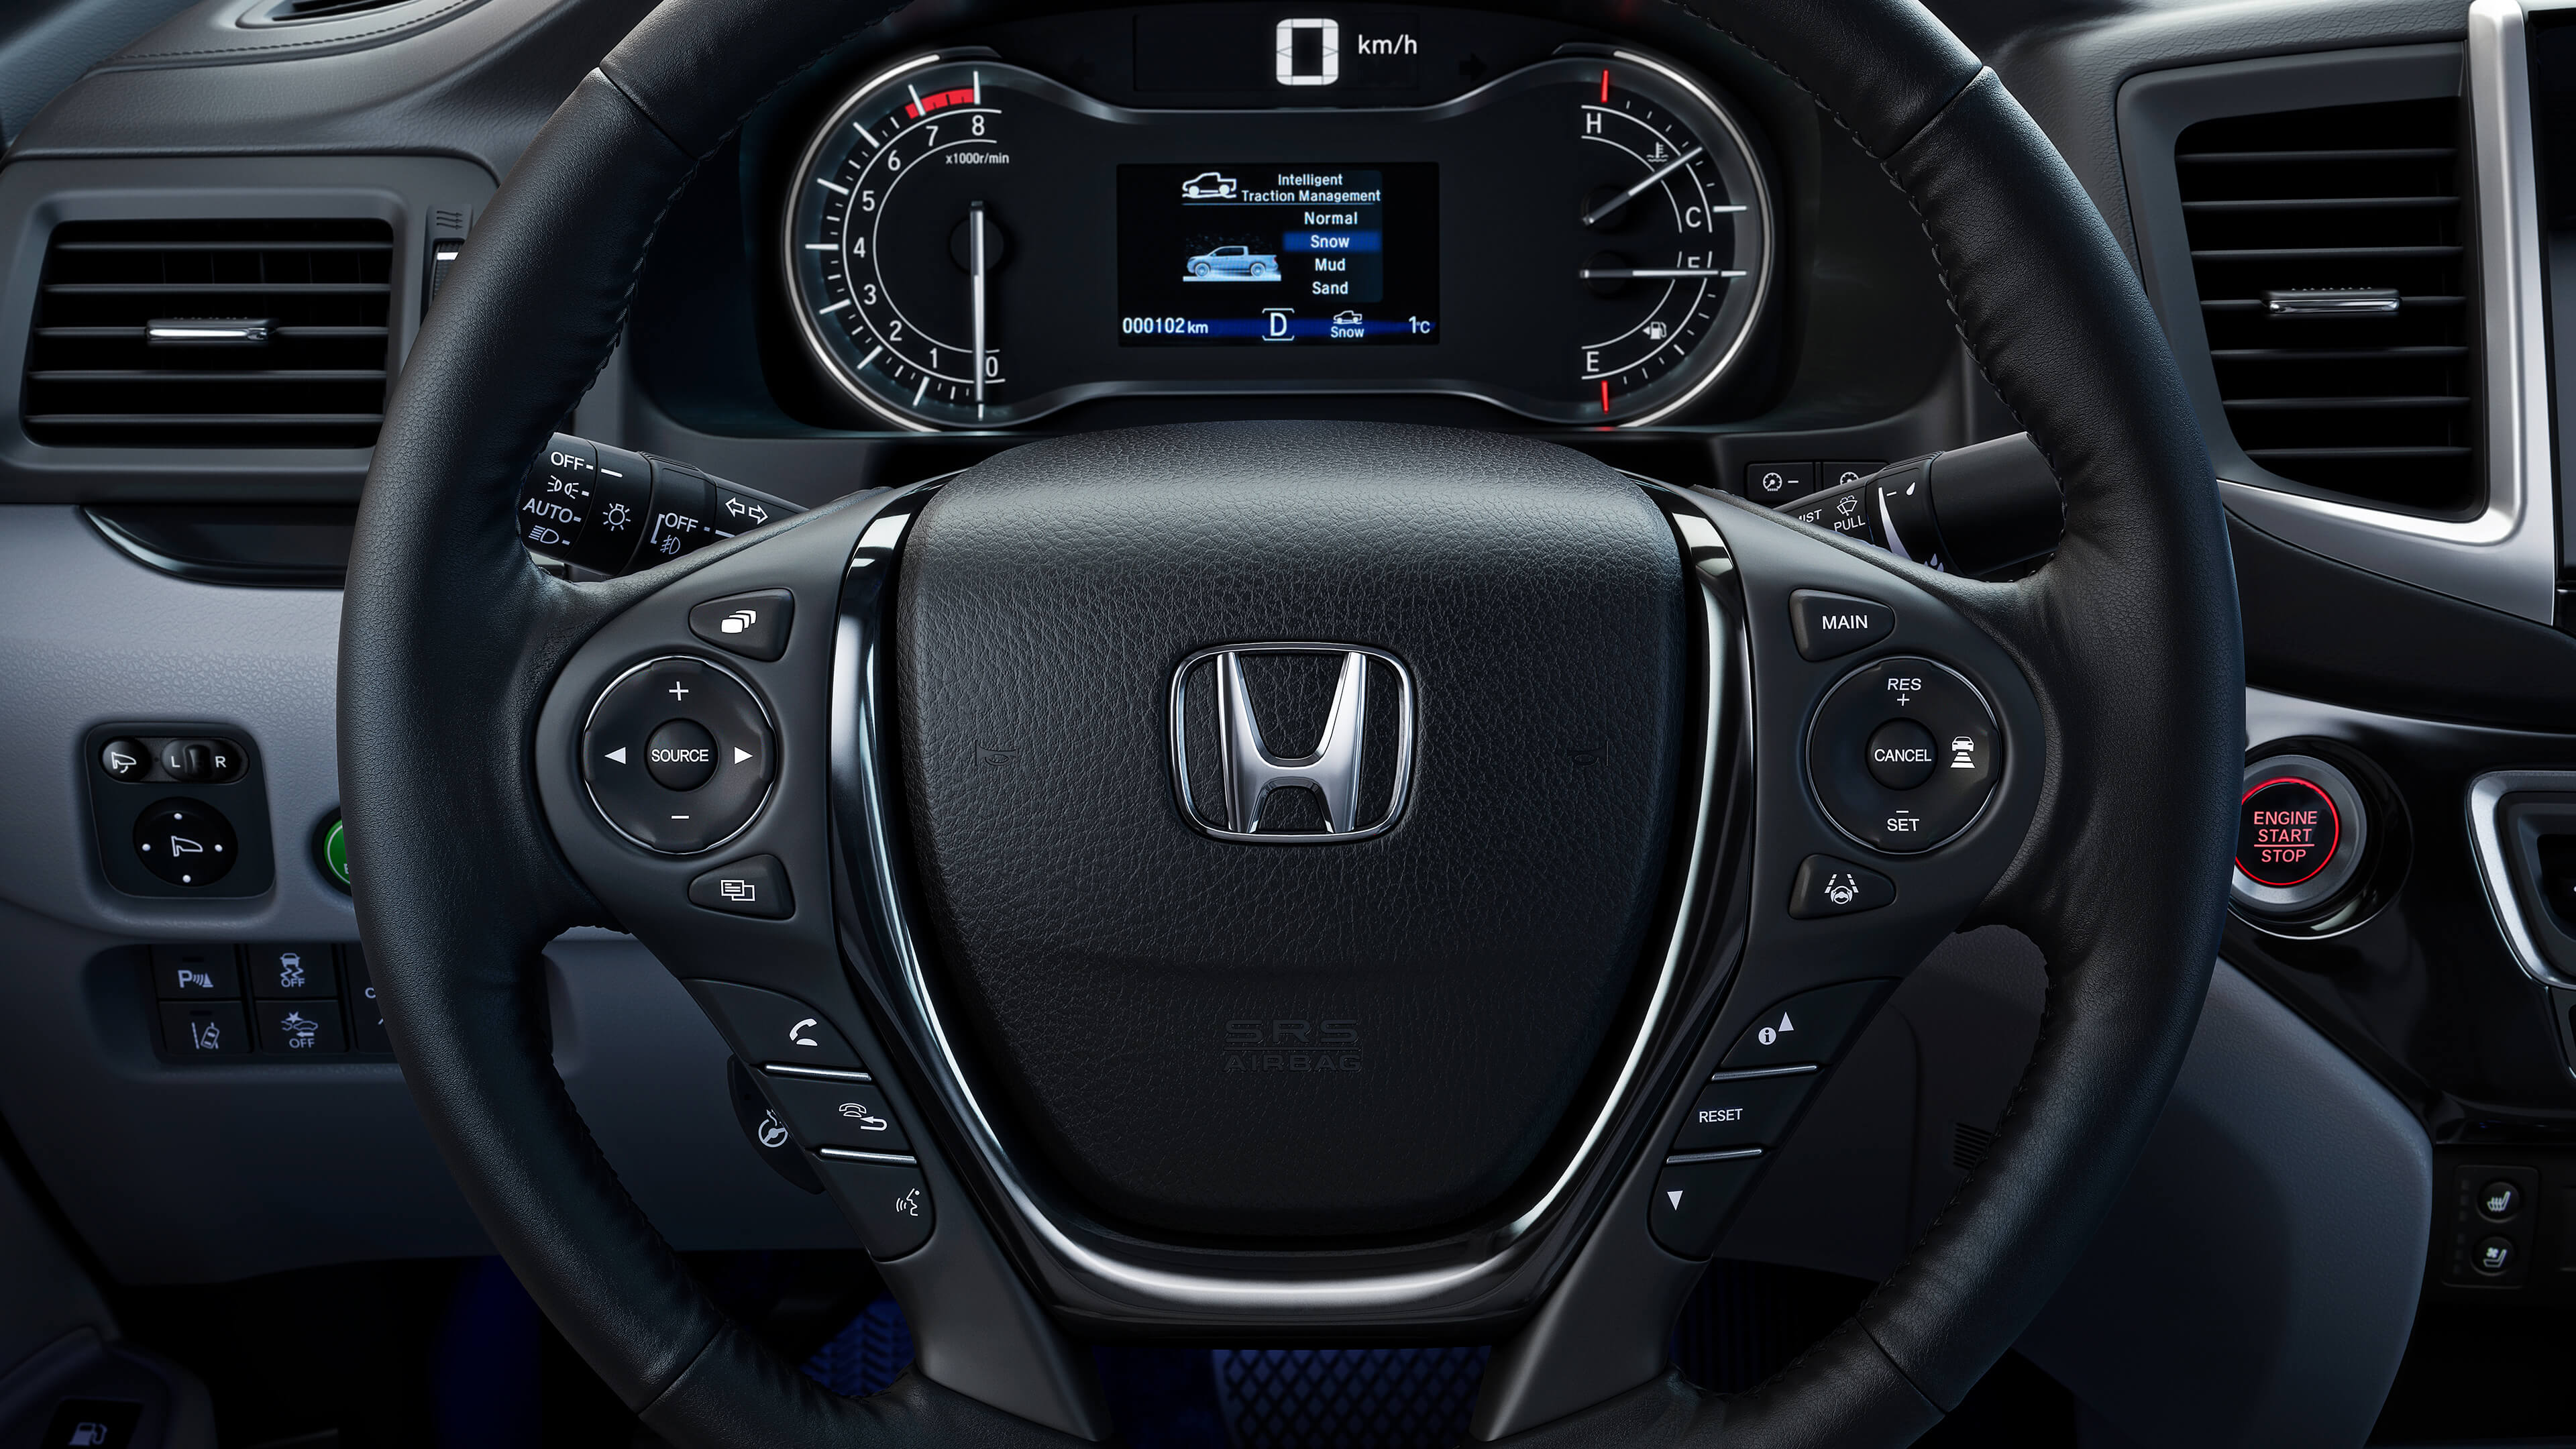 2020 Honda Ridgeline steering wheel and dash